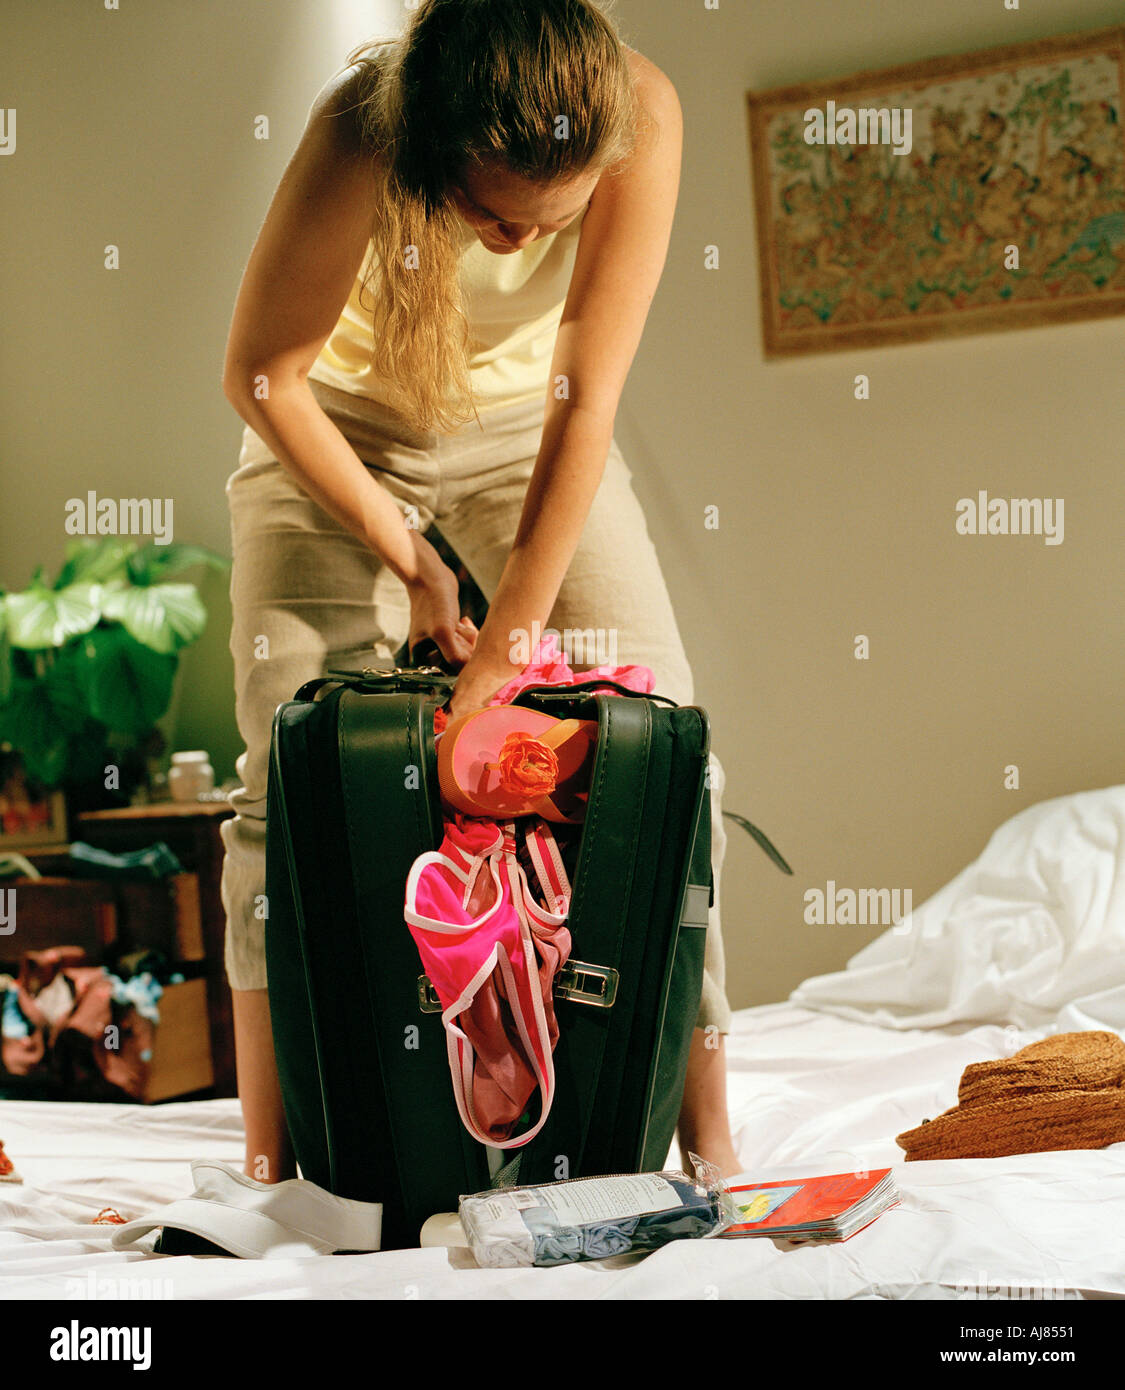 woman standing on bed closing over packed suitcase - Stock Image